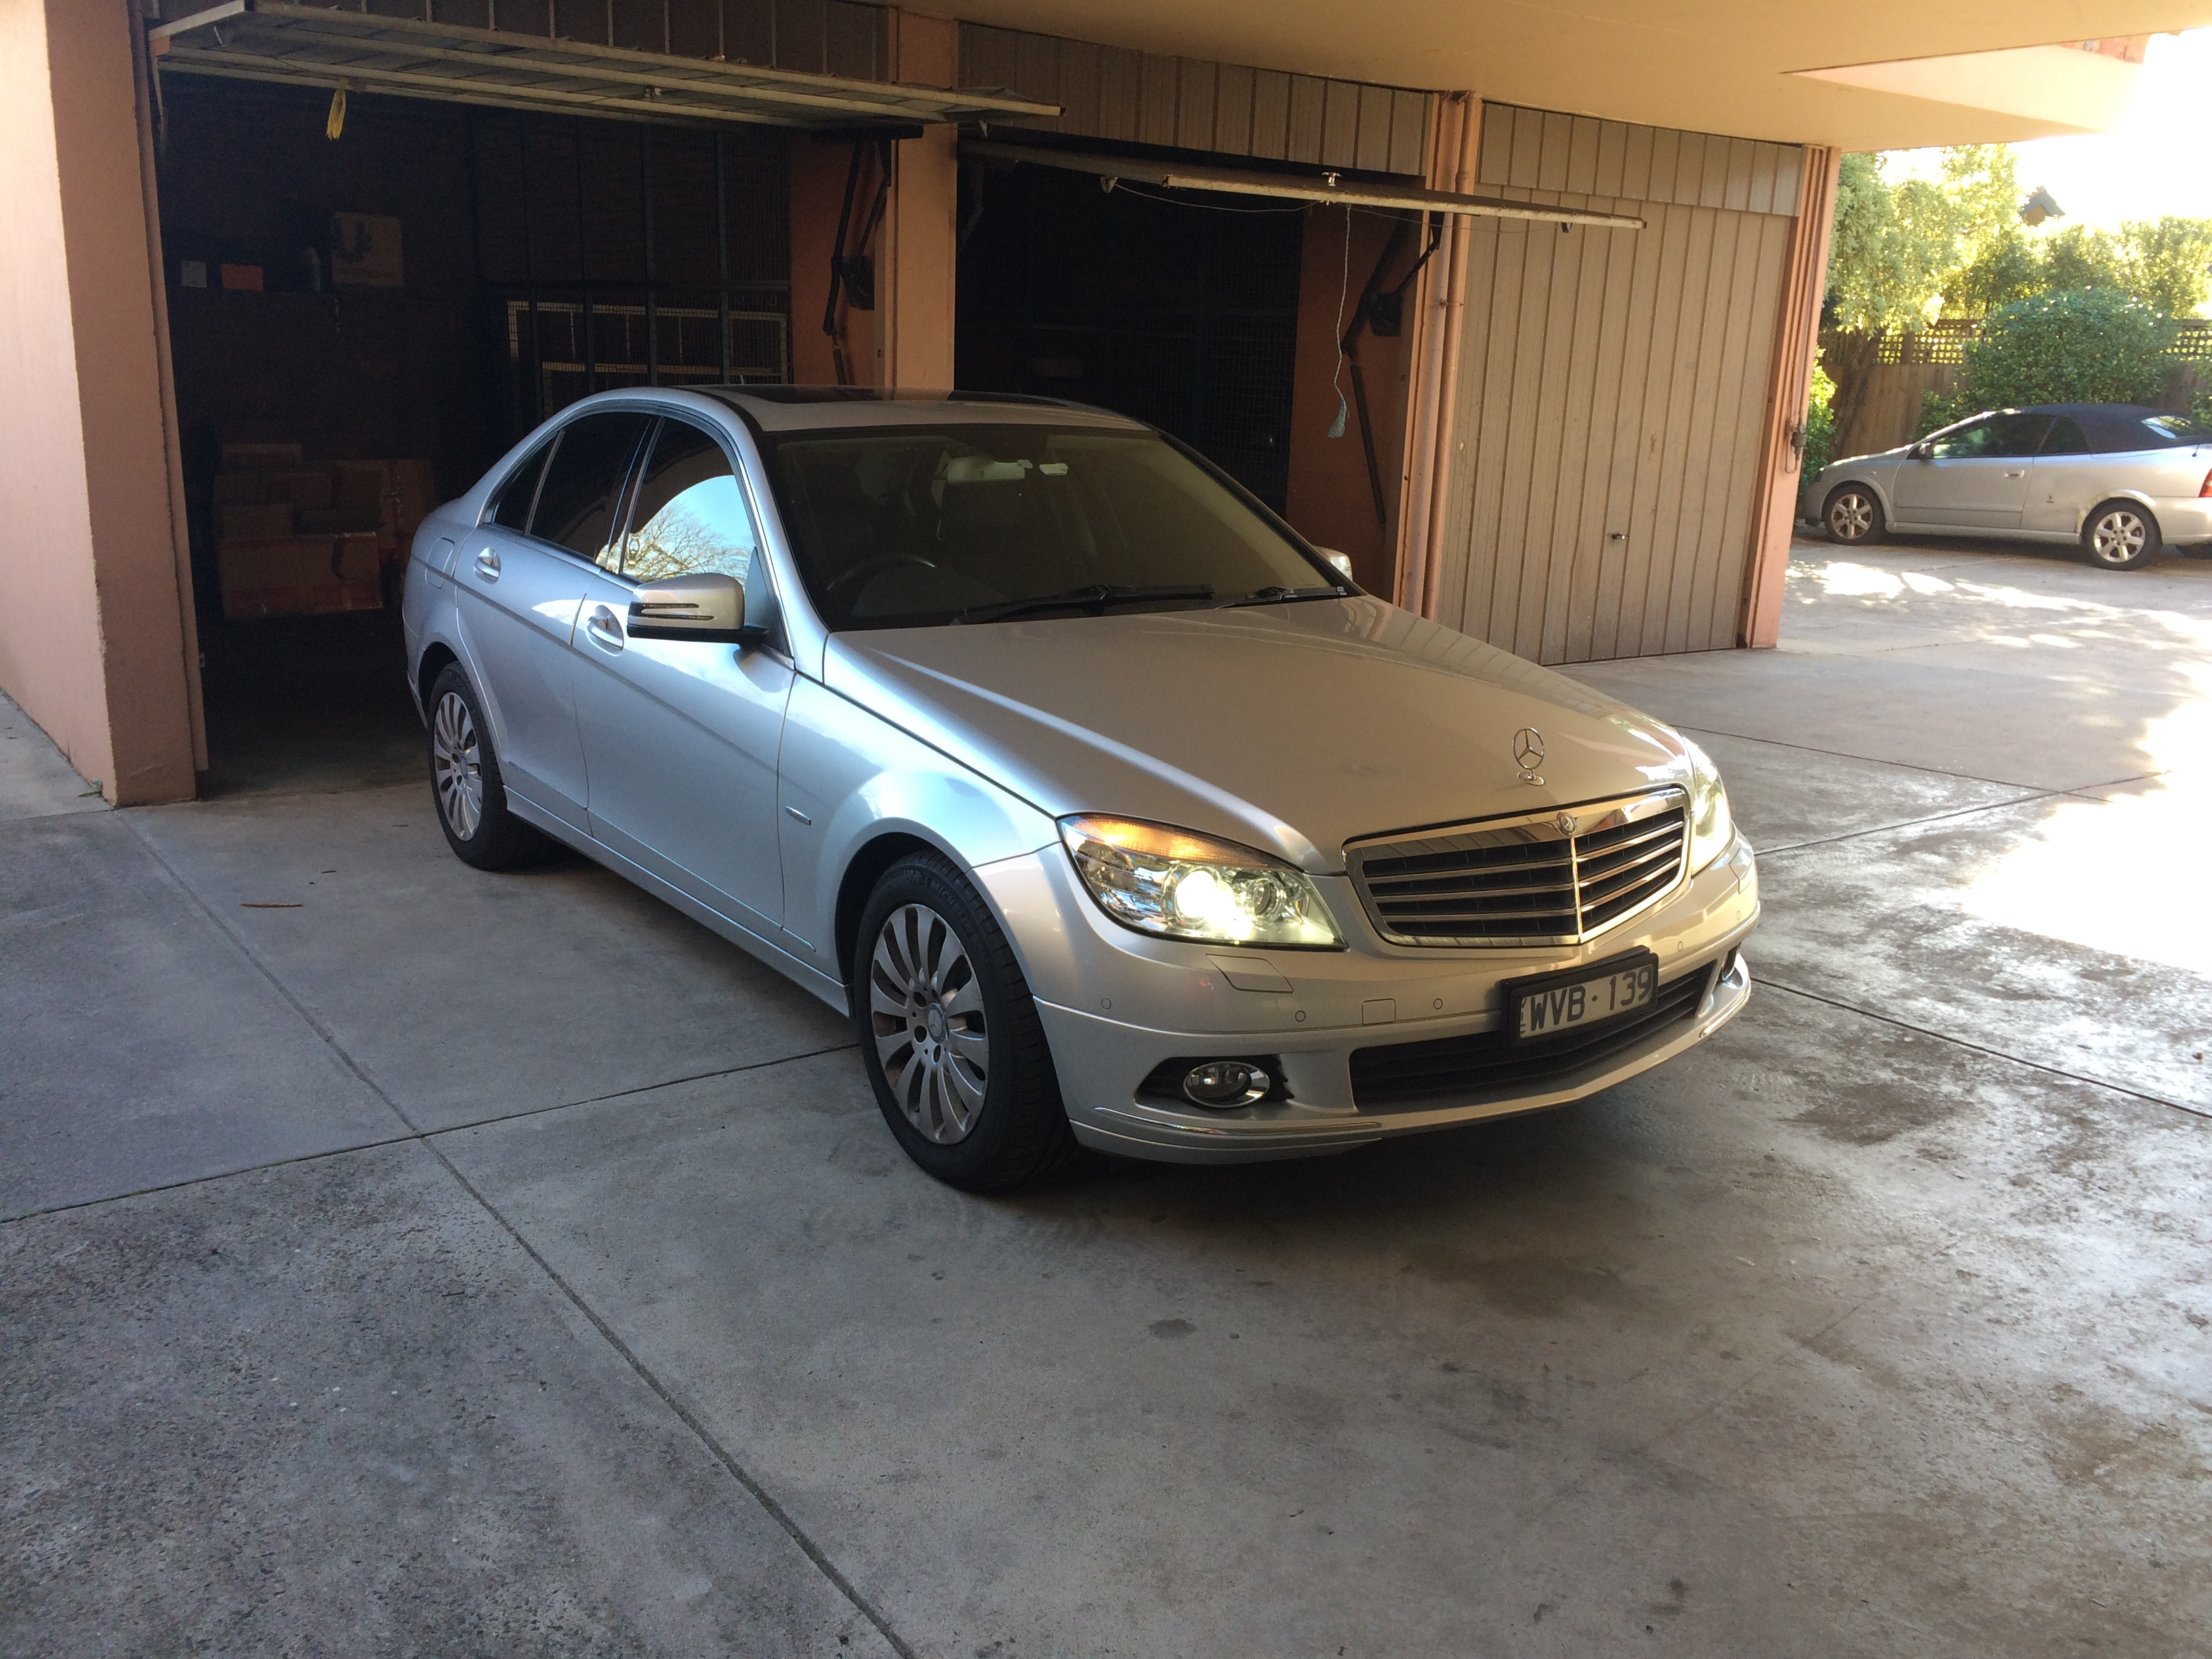 Picture of Hwee Ti's 2009 Mercedes Benz C200K